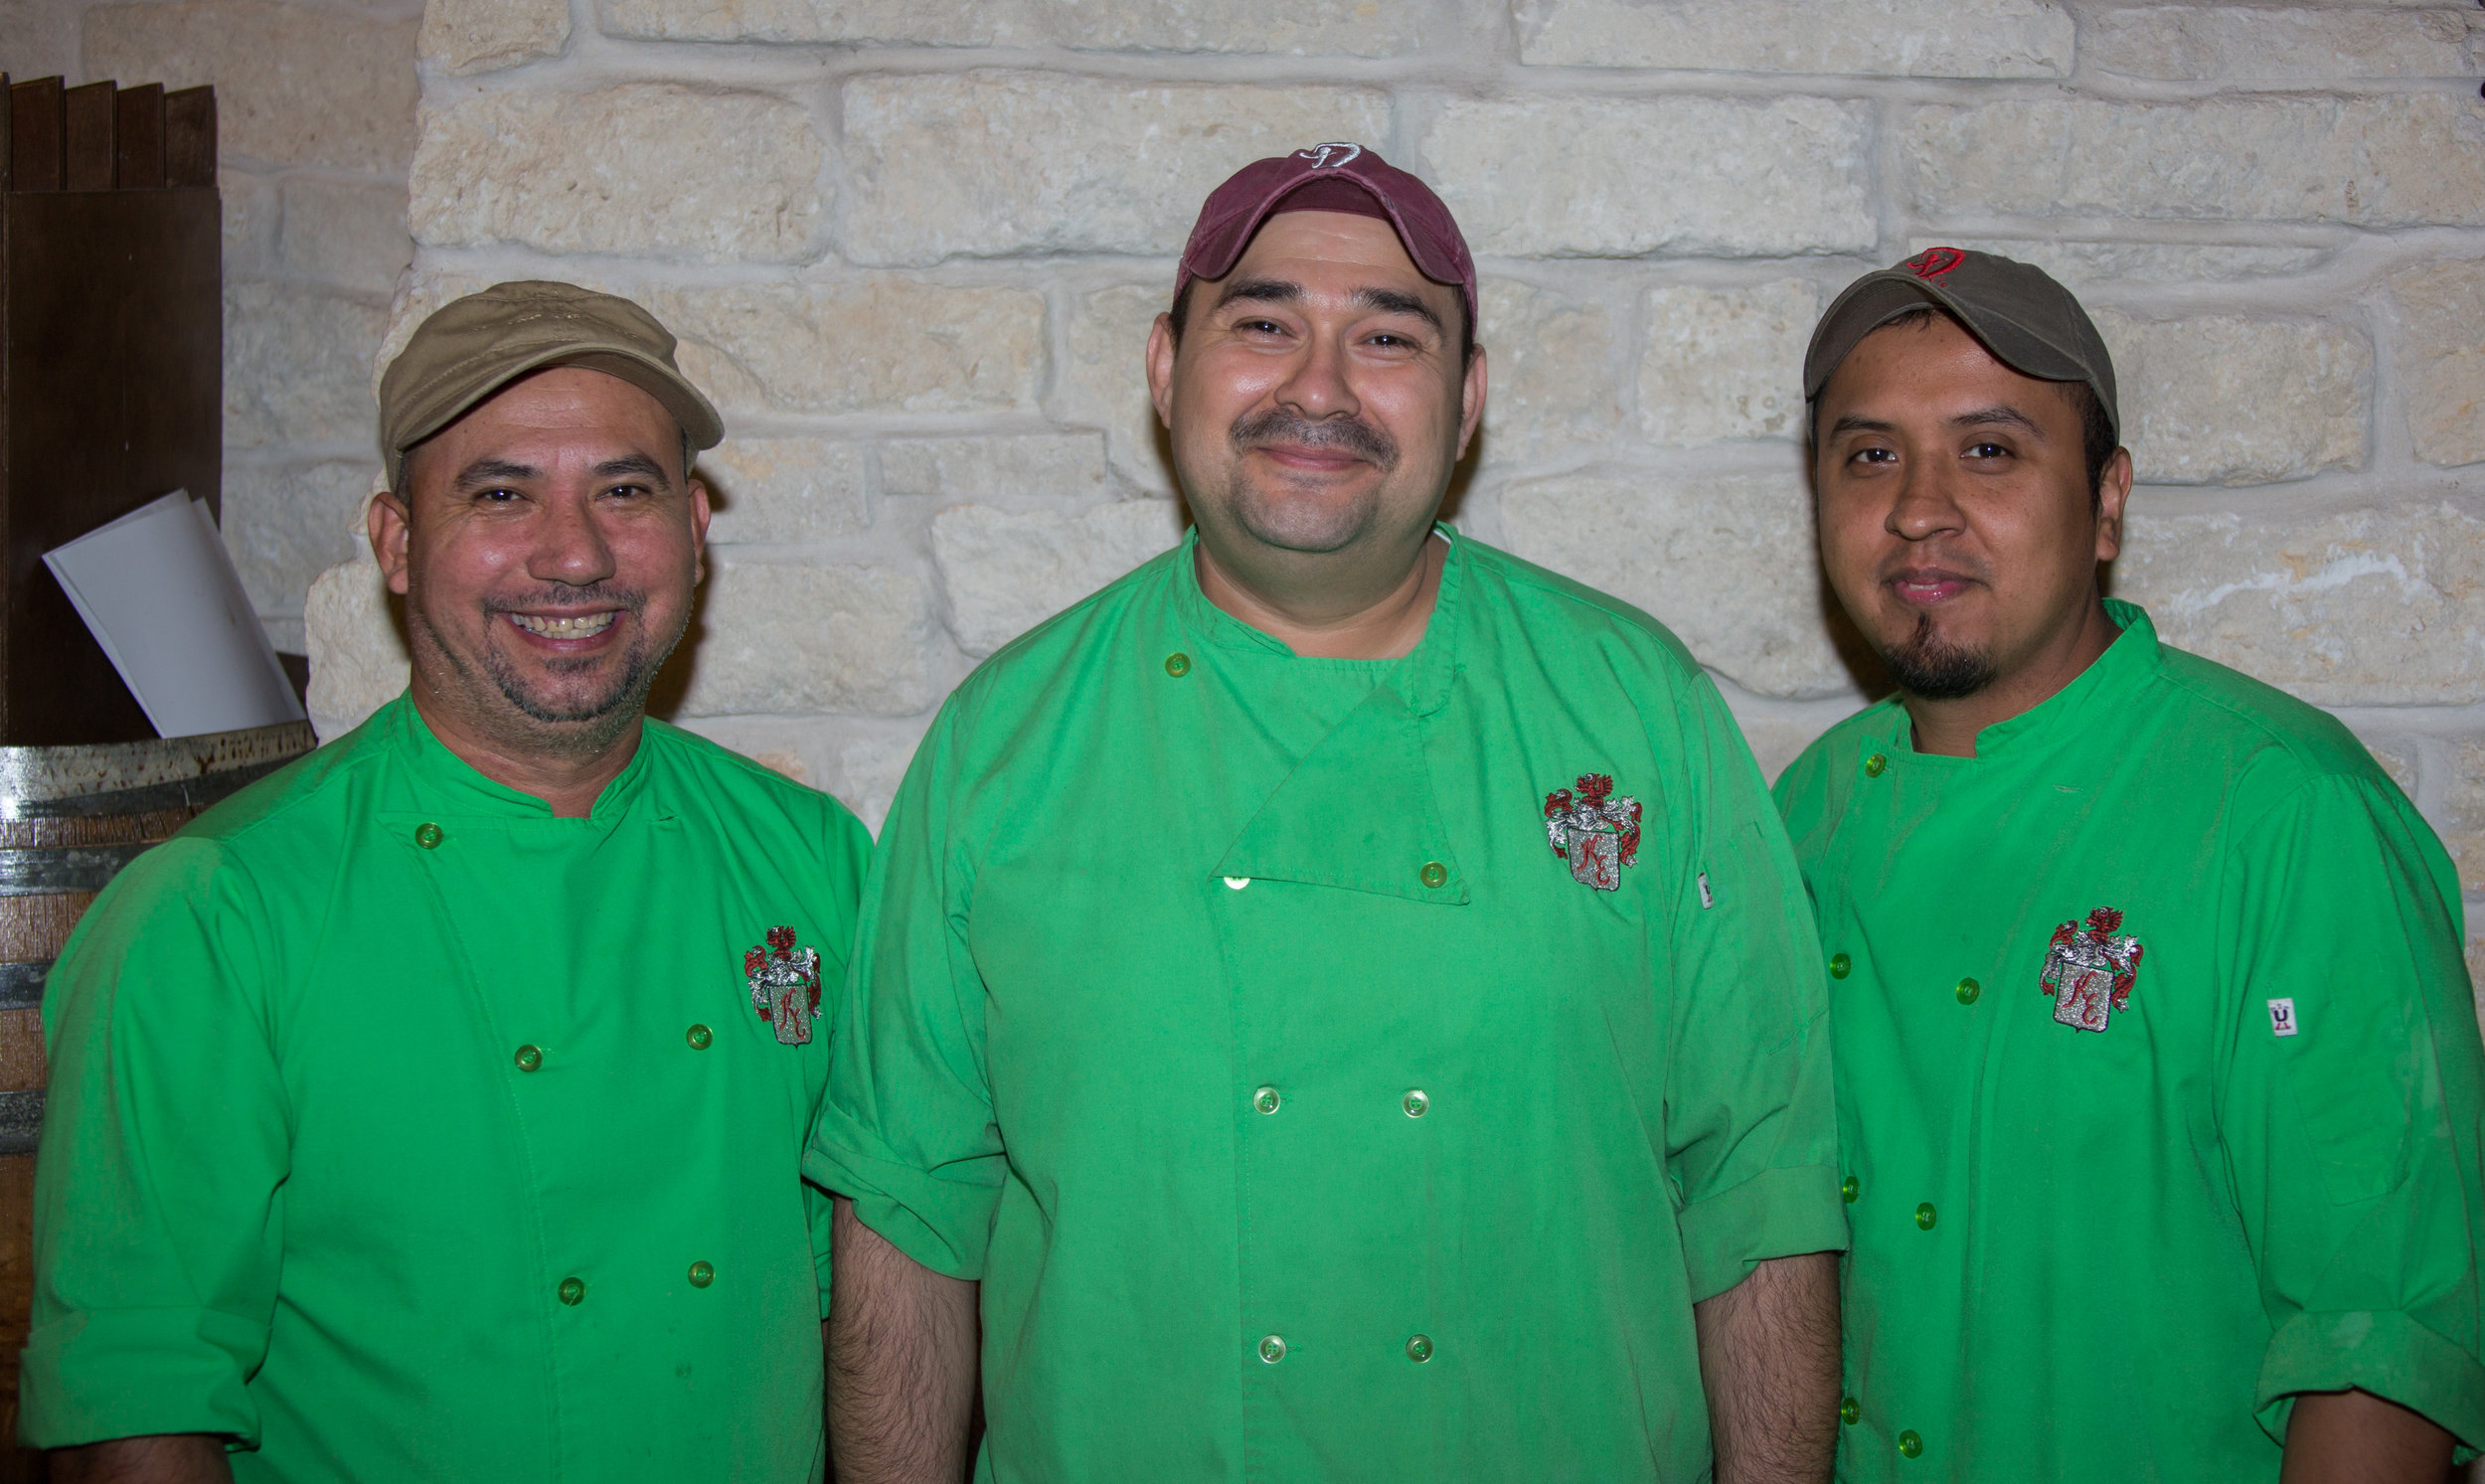 This phenomenal kitchen crew whips up tasty and beautiful plates for you every evening.